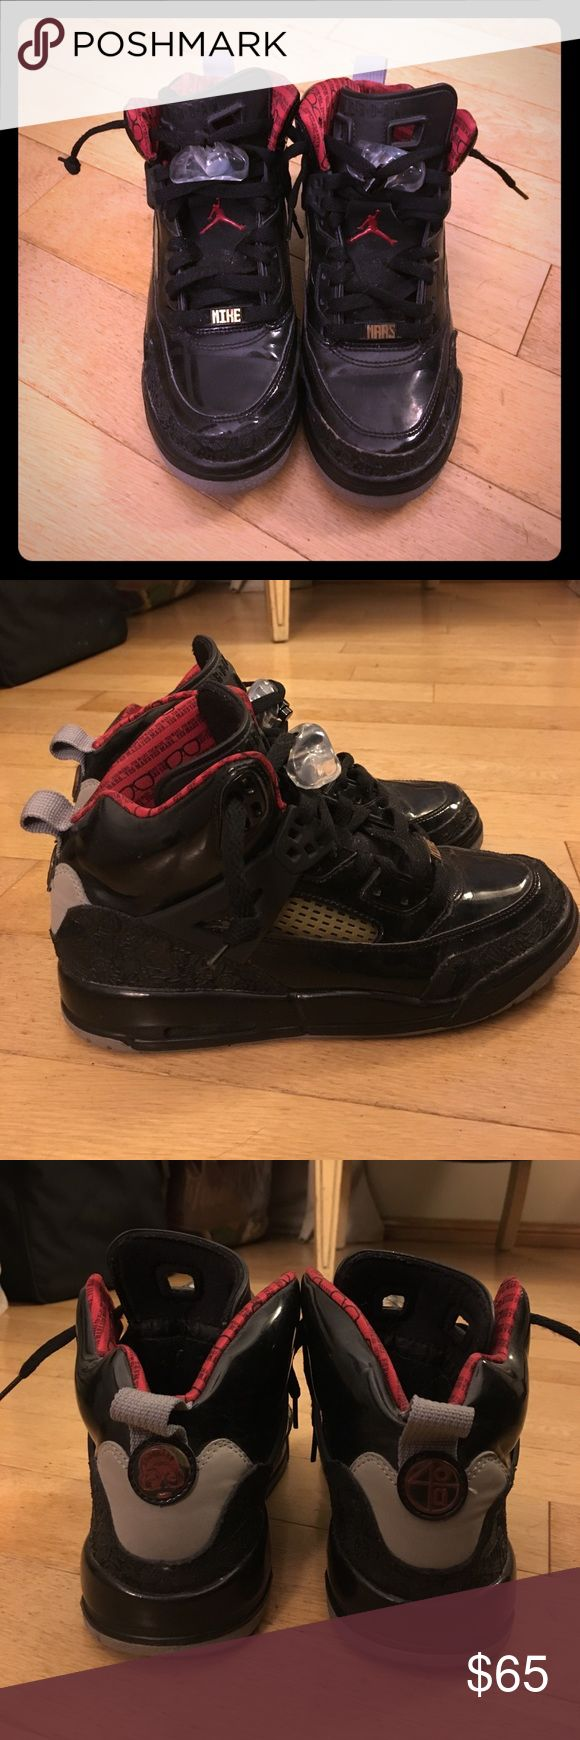 Jordan Spizike Yes Mars Sneakers Worn a few times, in great preowned condition! Could fit a women's size 7.5. (I'm a size 8 and they are snug on me) Jordan Shoes Sneakers